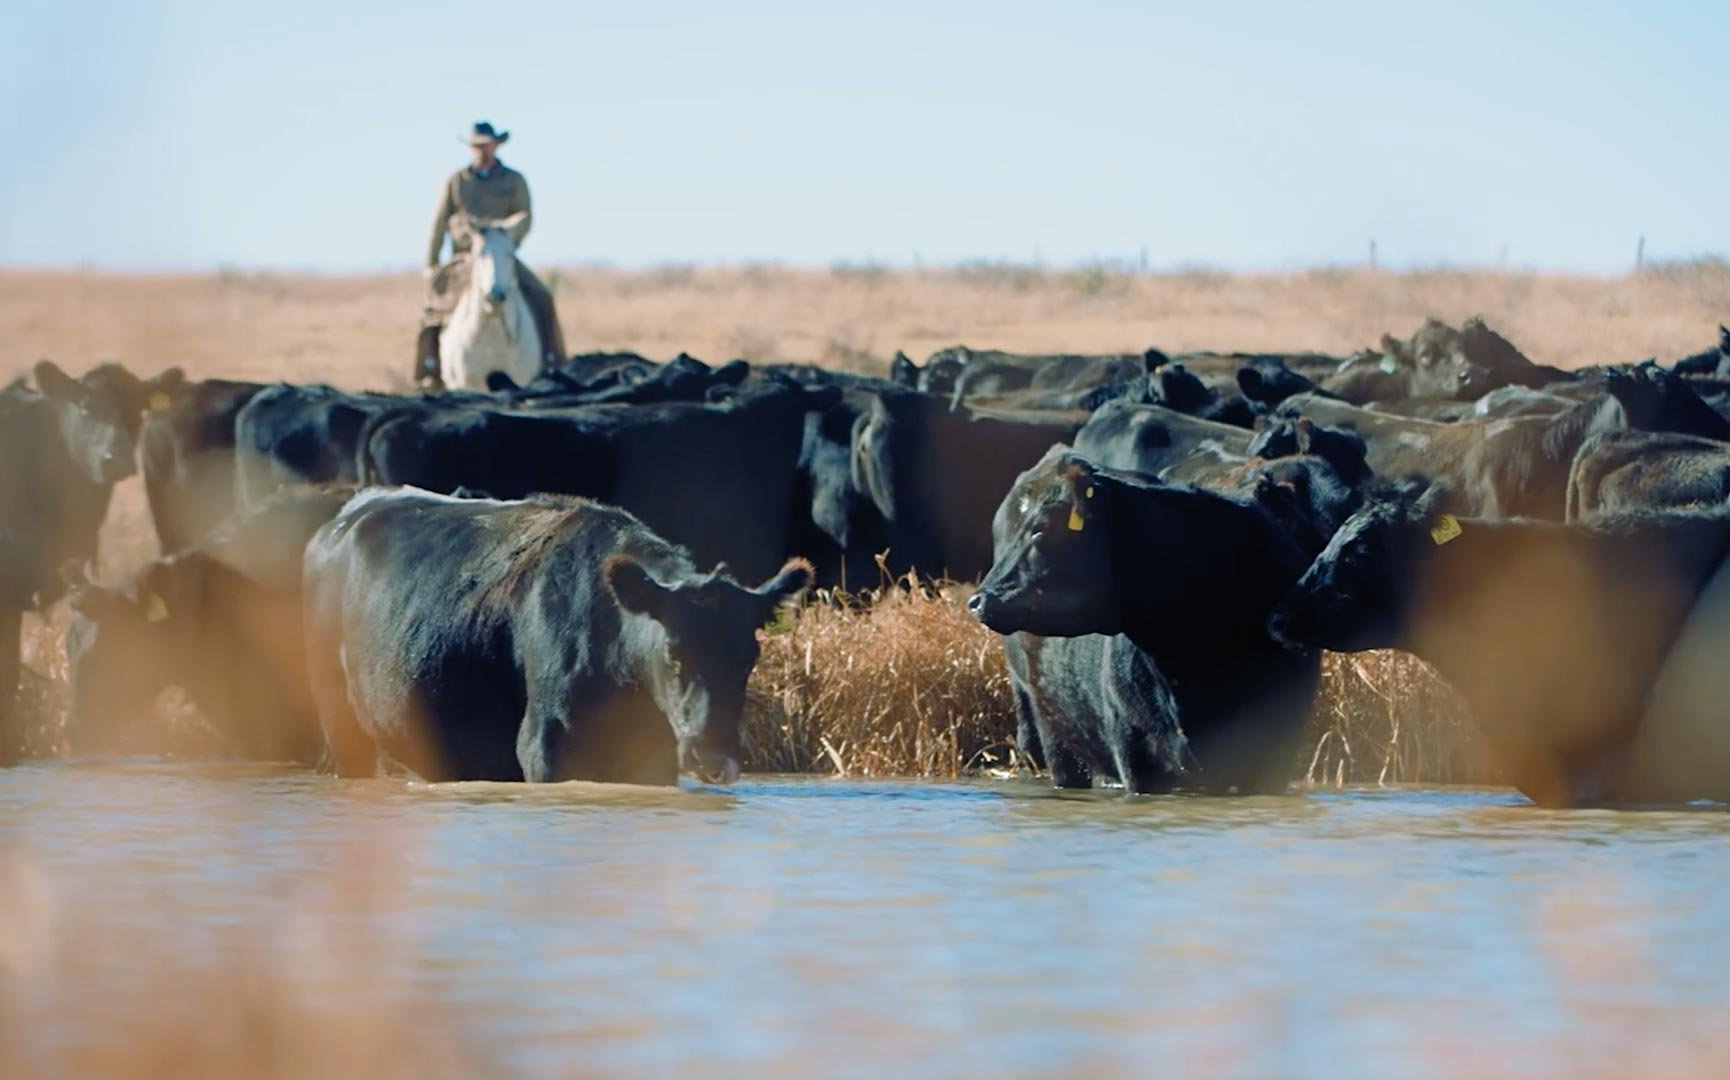 Rancher on horseback watches over herd of cattle drinking at edge of water.